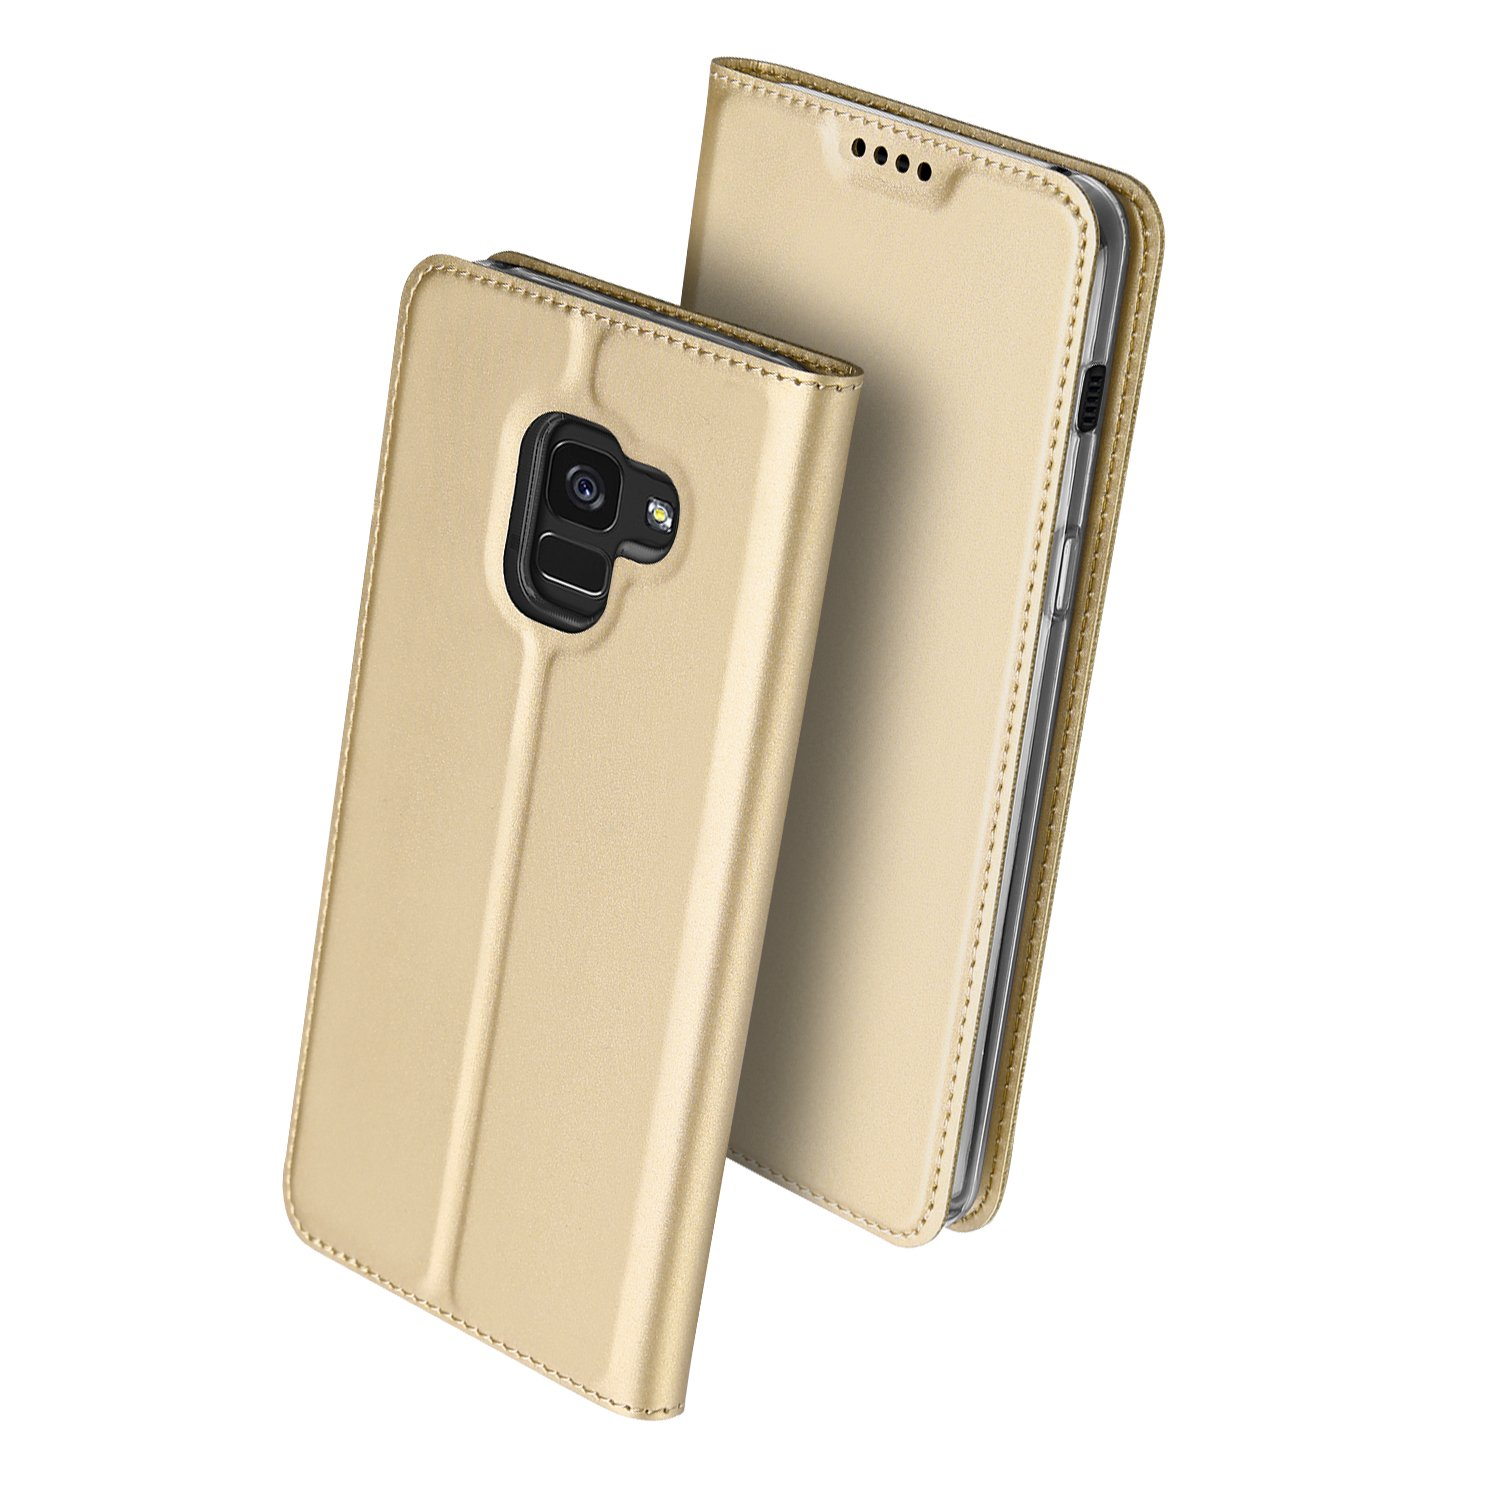 Samsung Galaxy S8 case, coloyanxi&DUX DUCIS Luxury Leather Flip Cover Wallet Phone Case For Samsung Galaxy S8 5.8 inch - Rose Gold